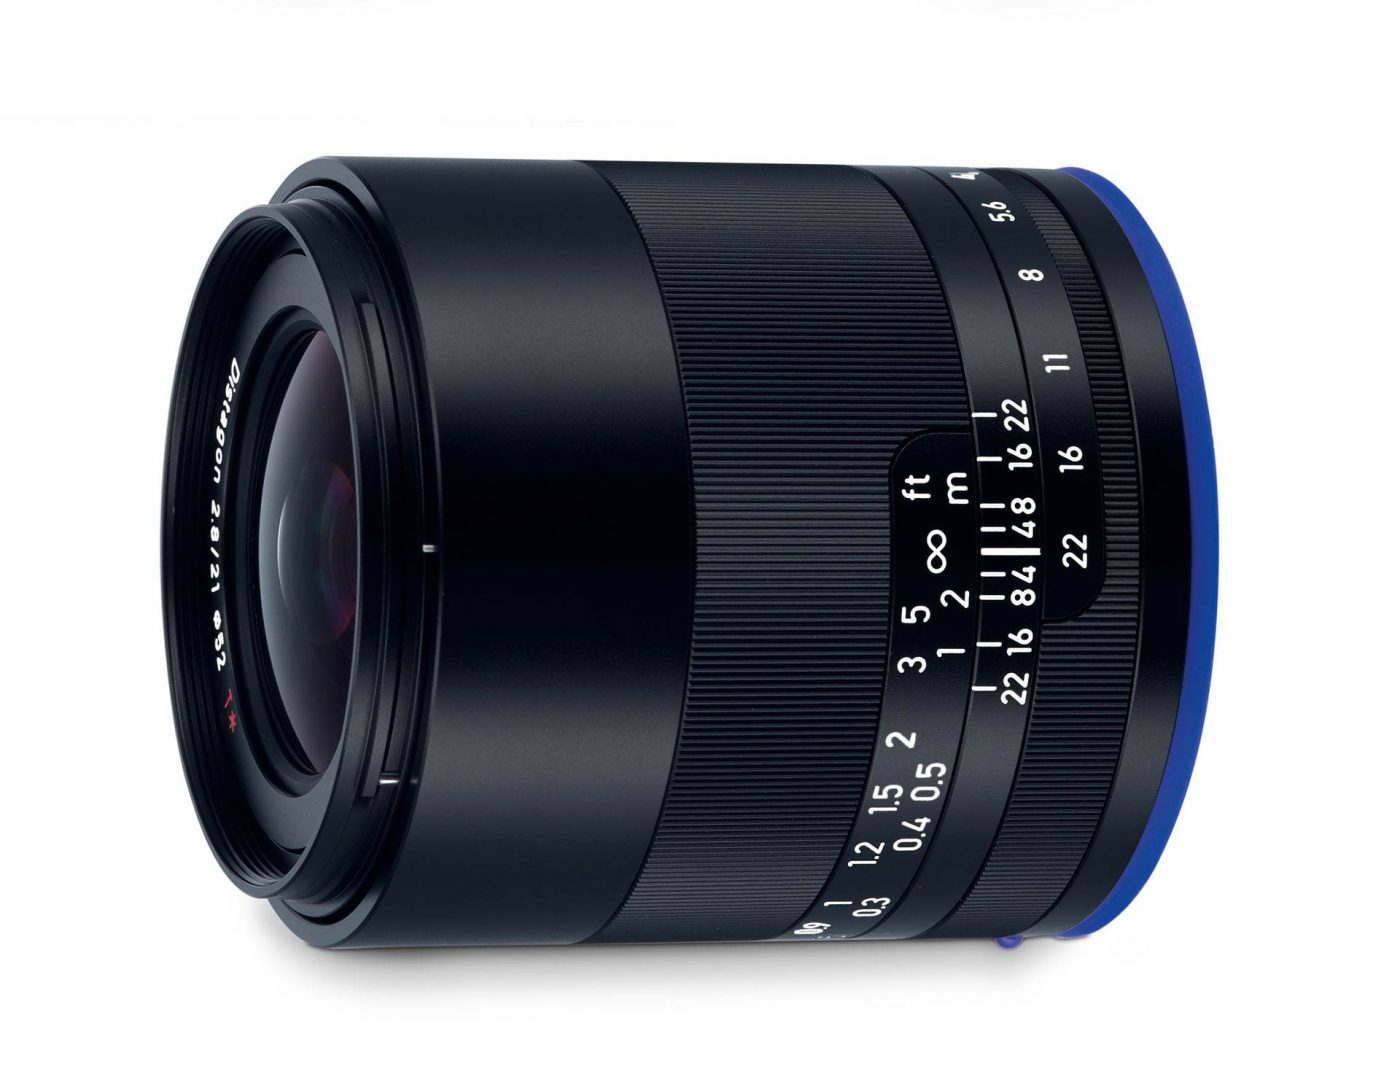 Zeiss Loxia 21mm f/2.8 Lens